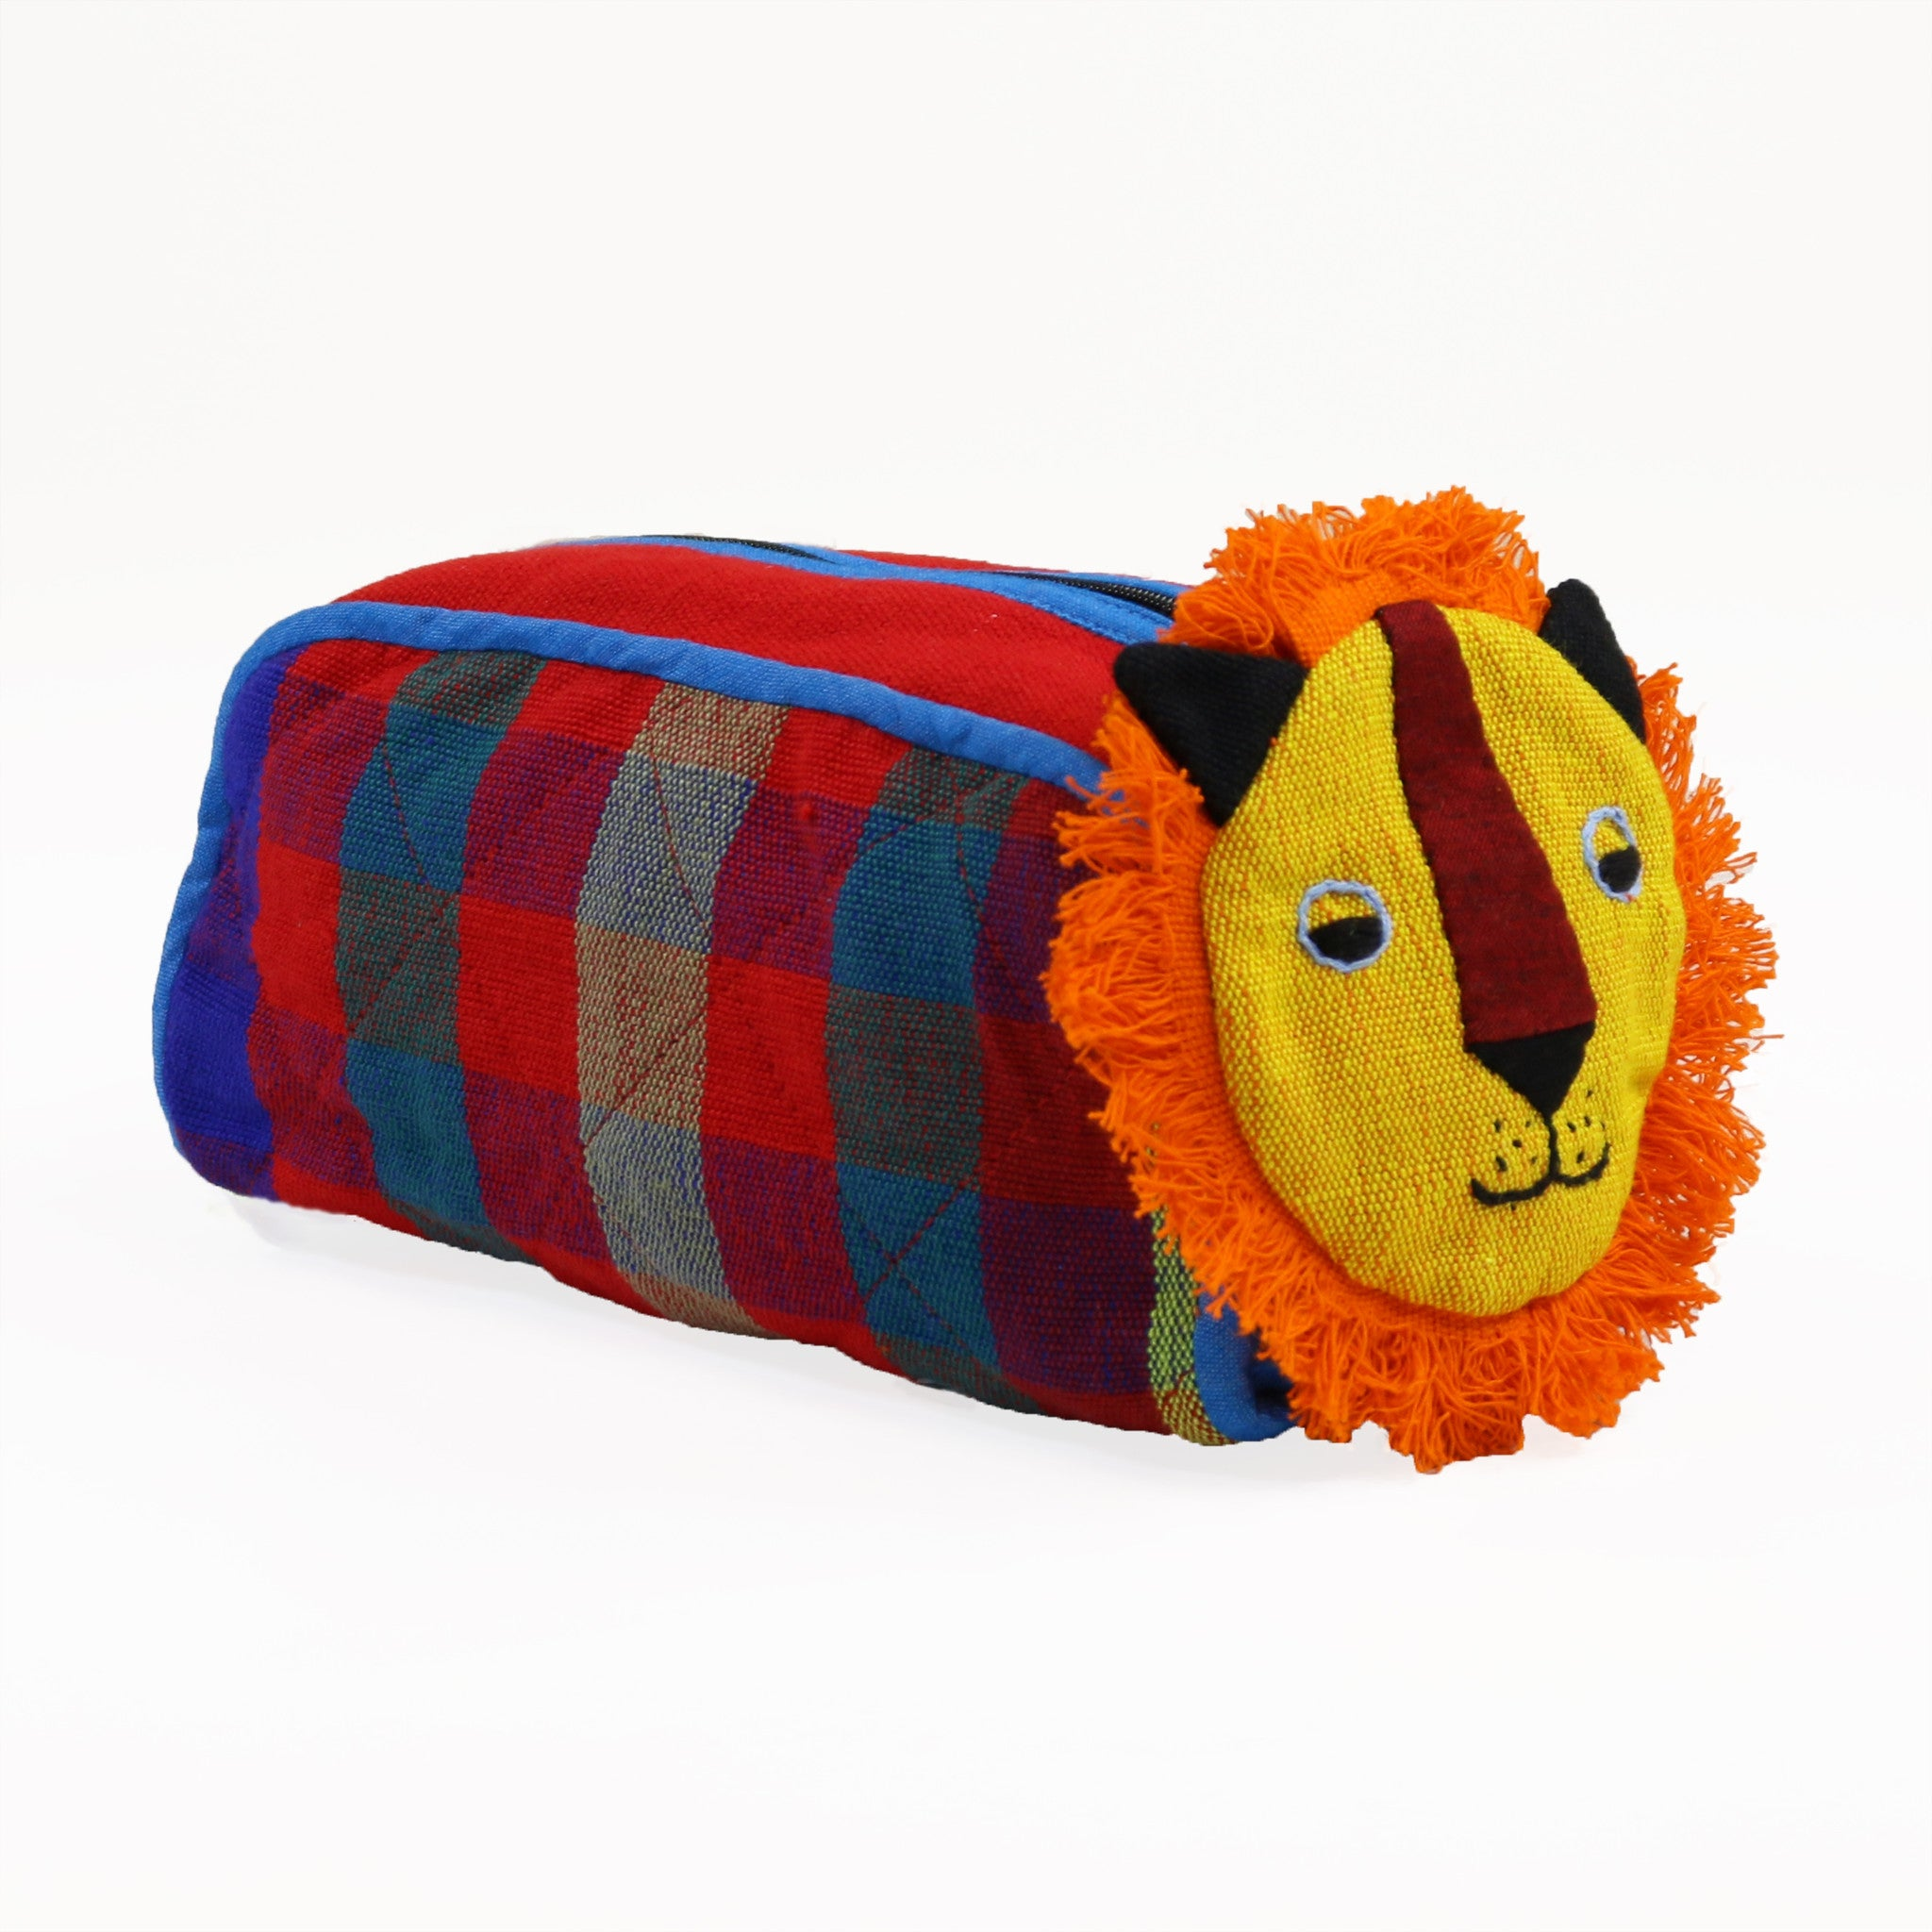 Lion Zip Pouch - Caboose fabric